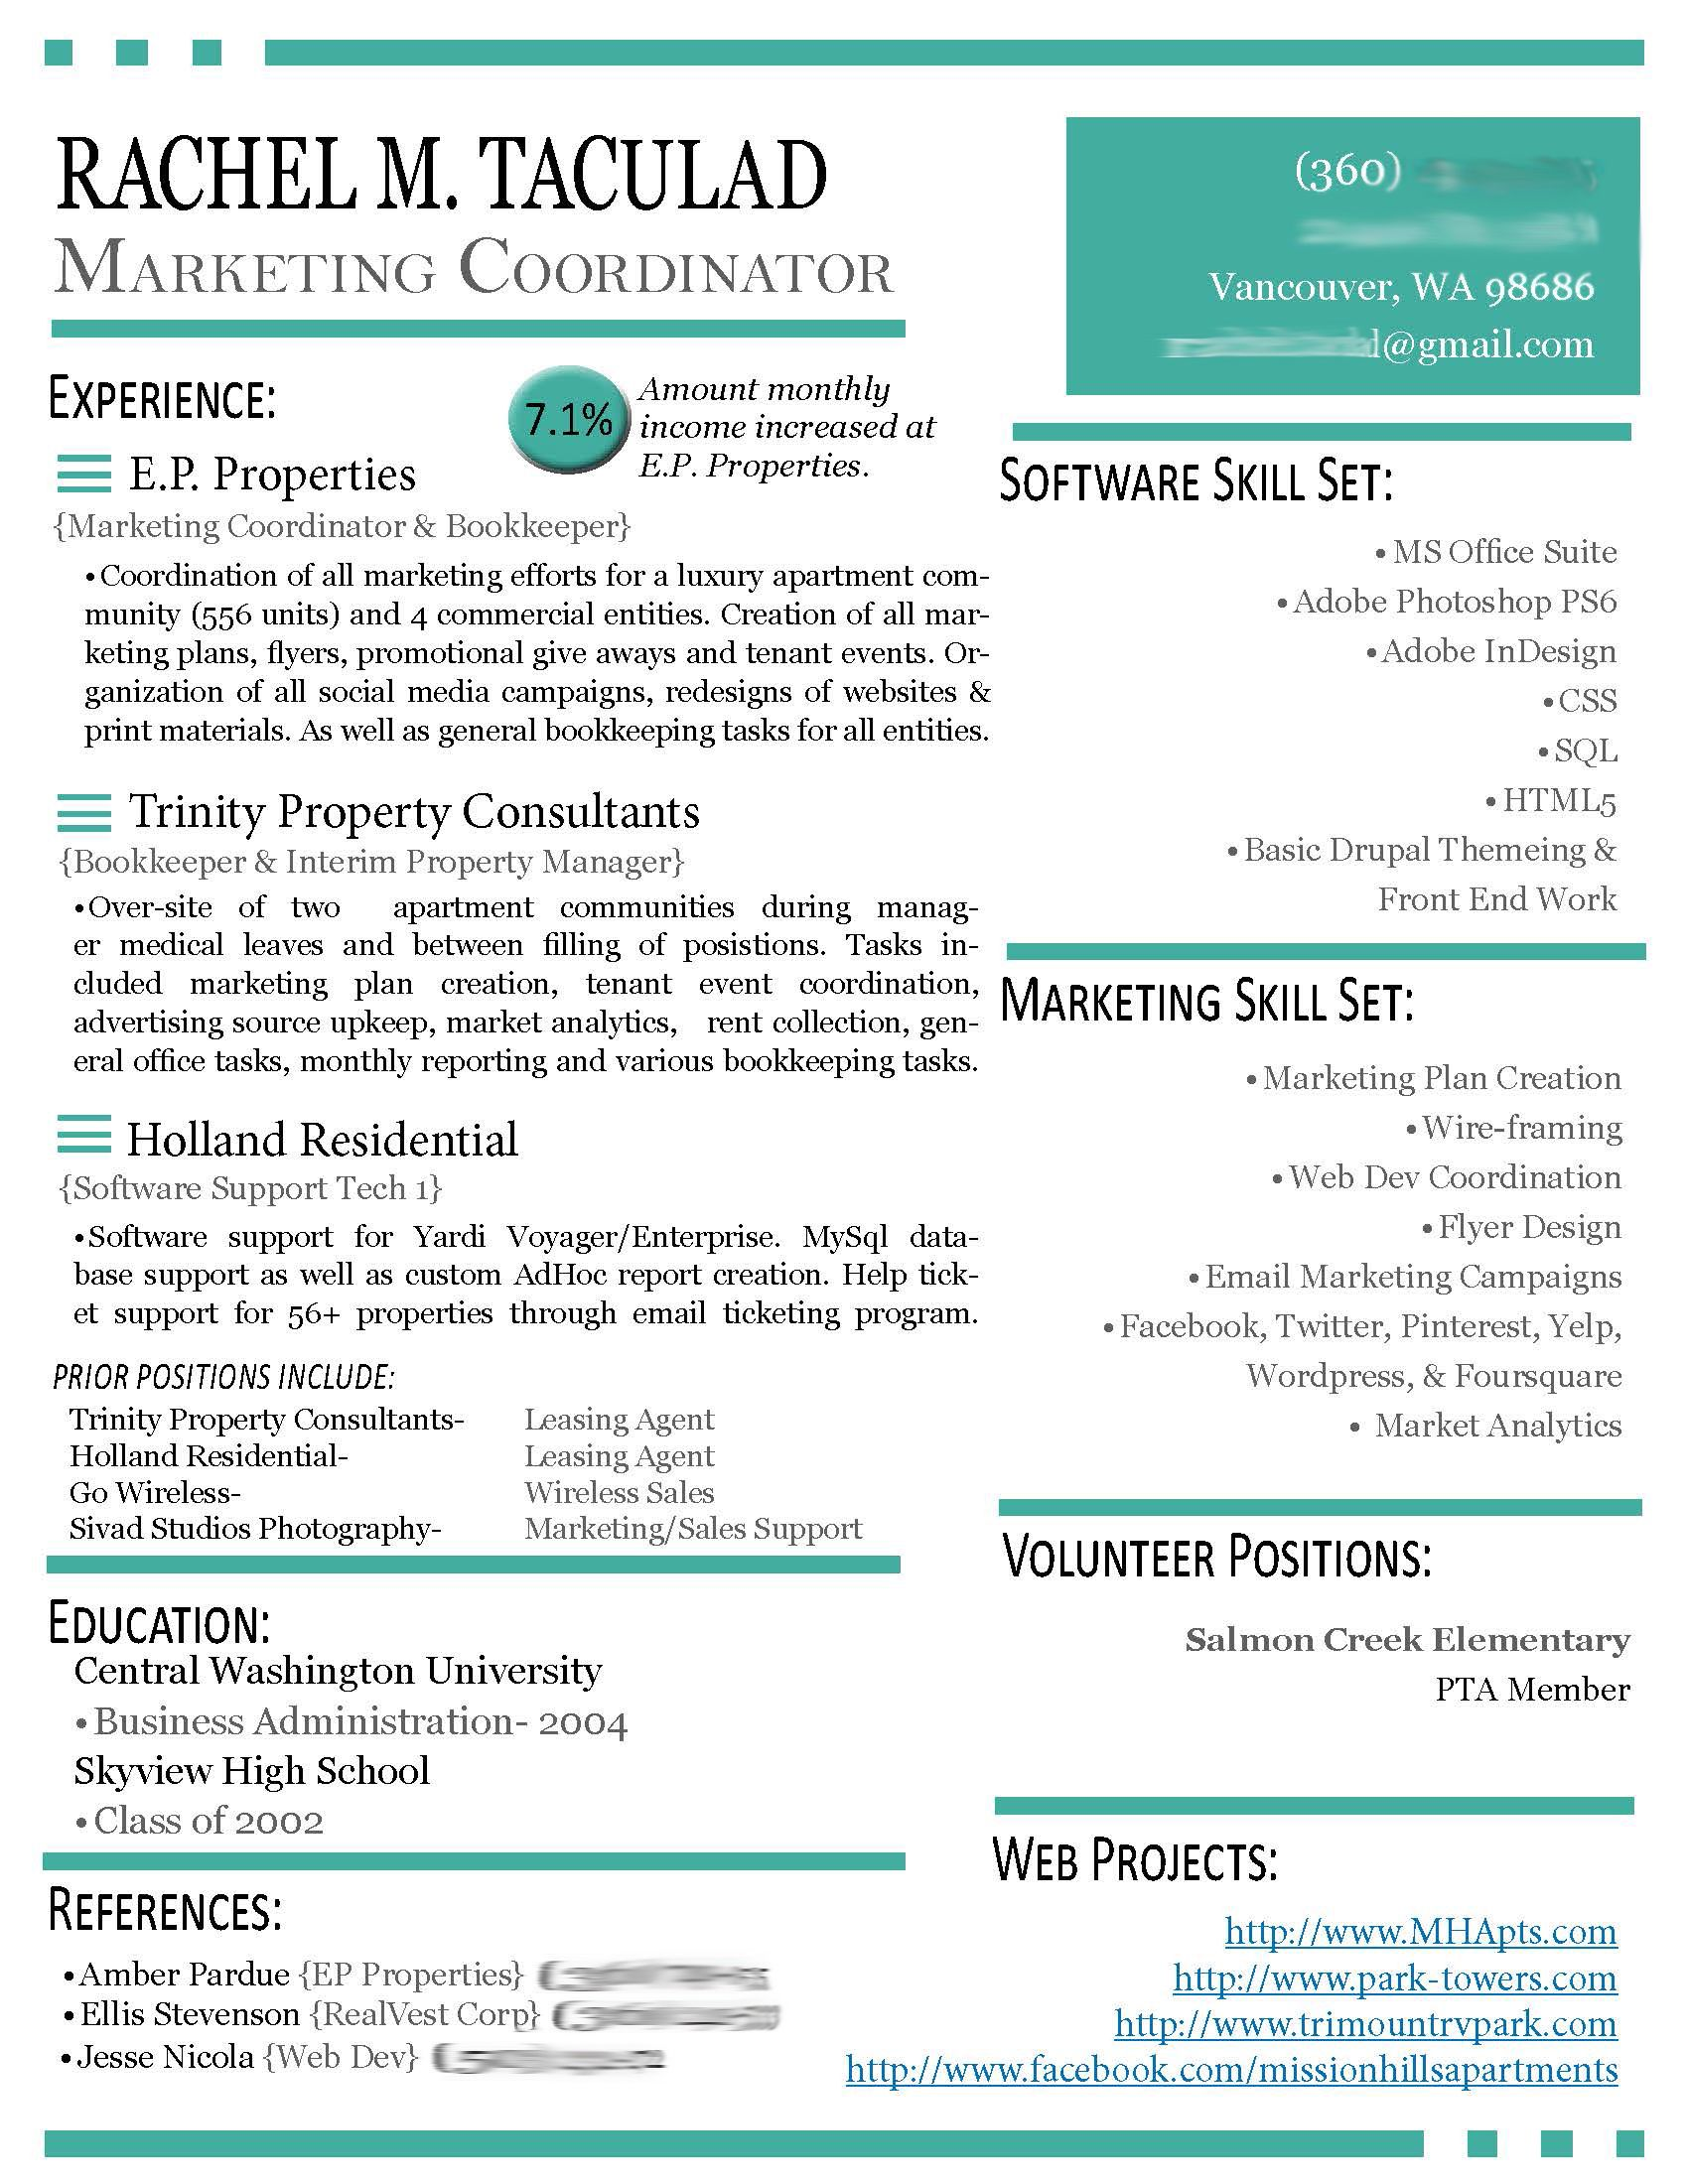 Opposenewapstandardsus  Winsome  Images About Work Stuff On Pinterest  Resume Professional  With Magnificent  Images About Work Stuff On Pinterest  Resume Professional Resume Template And Resume Templates With Archaic Types Of Skills Resume Also Sample Actors Resume In Addition Visual Designer Resume And Sample Resume Summaries As Well As Game Tester Resume Additionally Sample Project Management Resume From Pinterestcom With Opposenewapstandardsus  Magnificent  Images About Work Stuff On Pinterest  Resume Professional  With Archaic  Images About Work Stuff On Pinterest  Resume Professional Resume Template And Resume Templates And Winsome Types Of Skills Resume Also Sample Actors Resume In Addition Visual Designer Resume From Pinterestcom